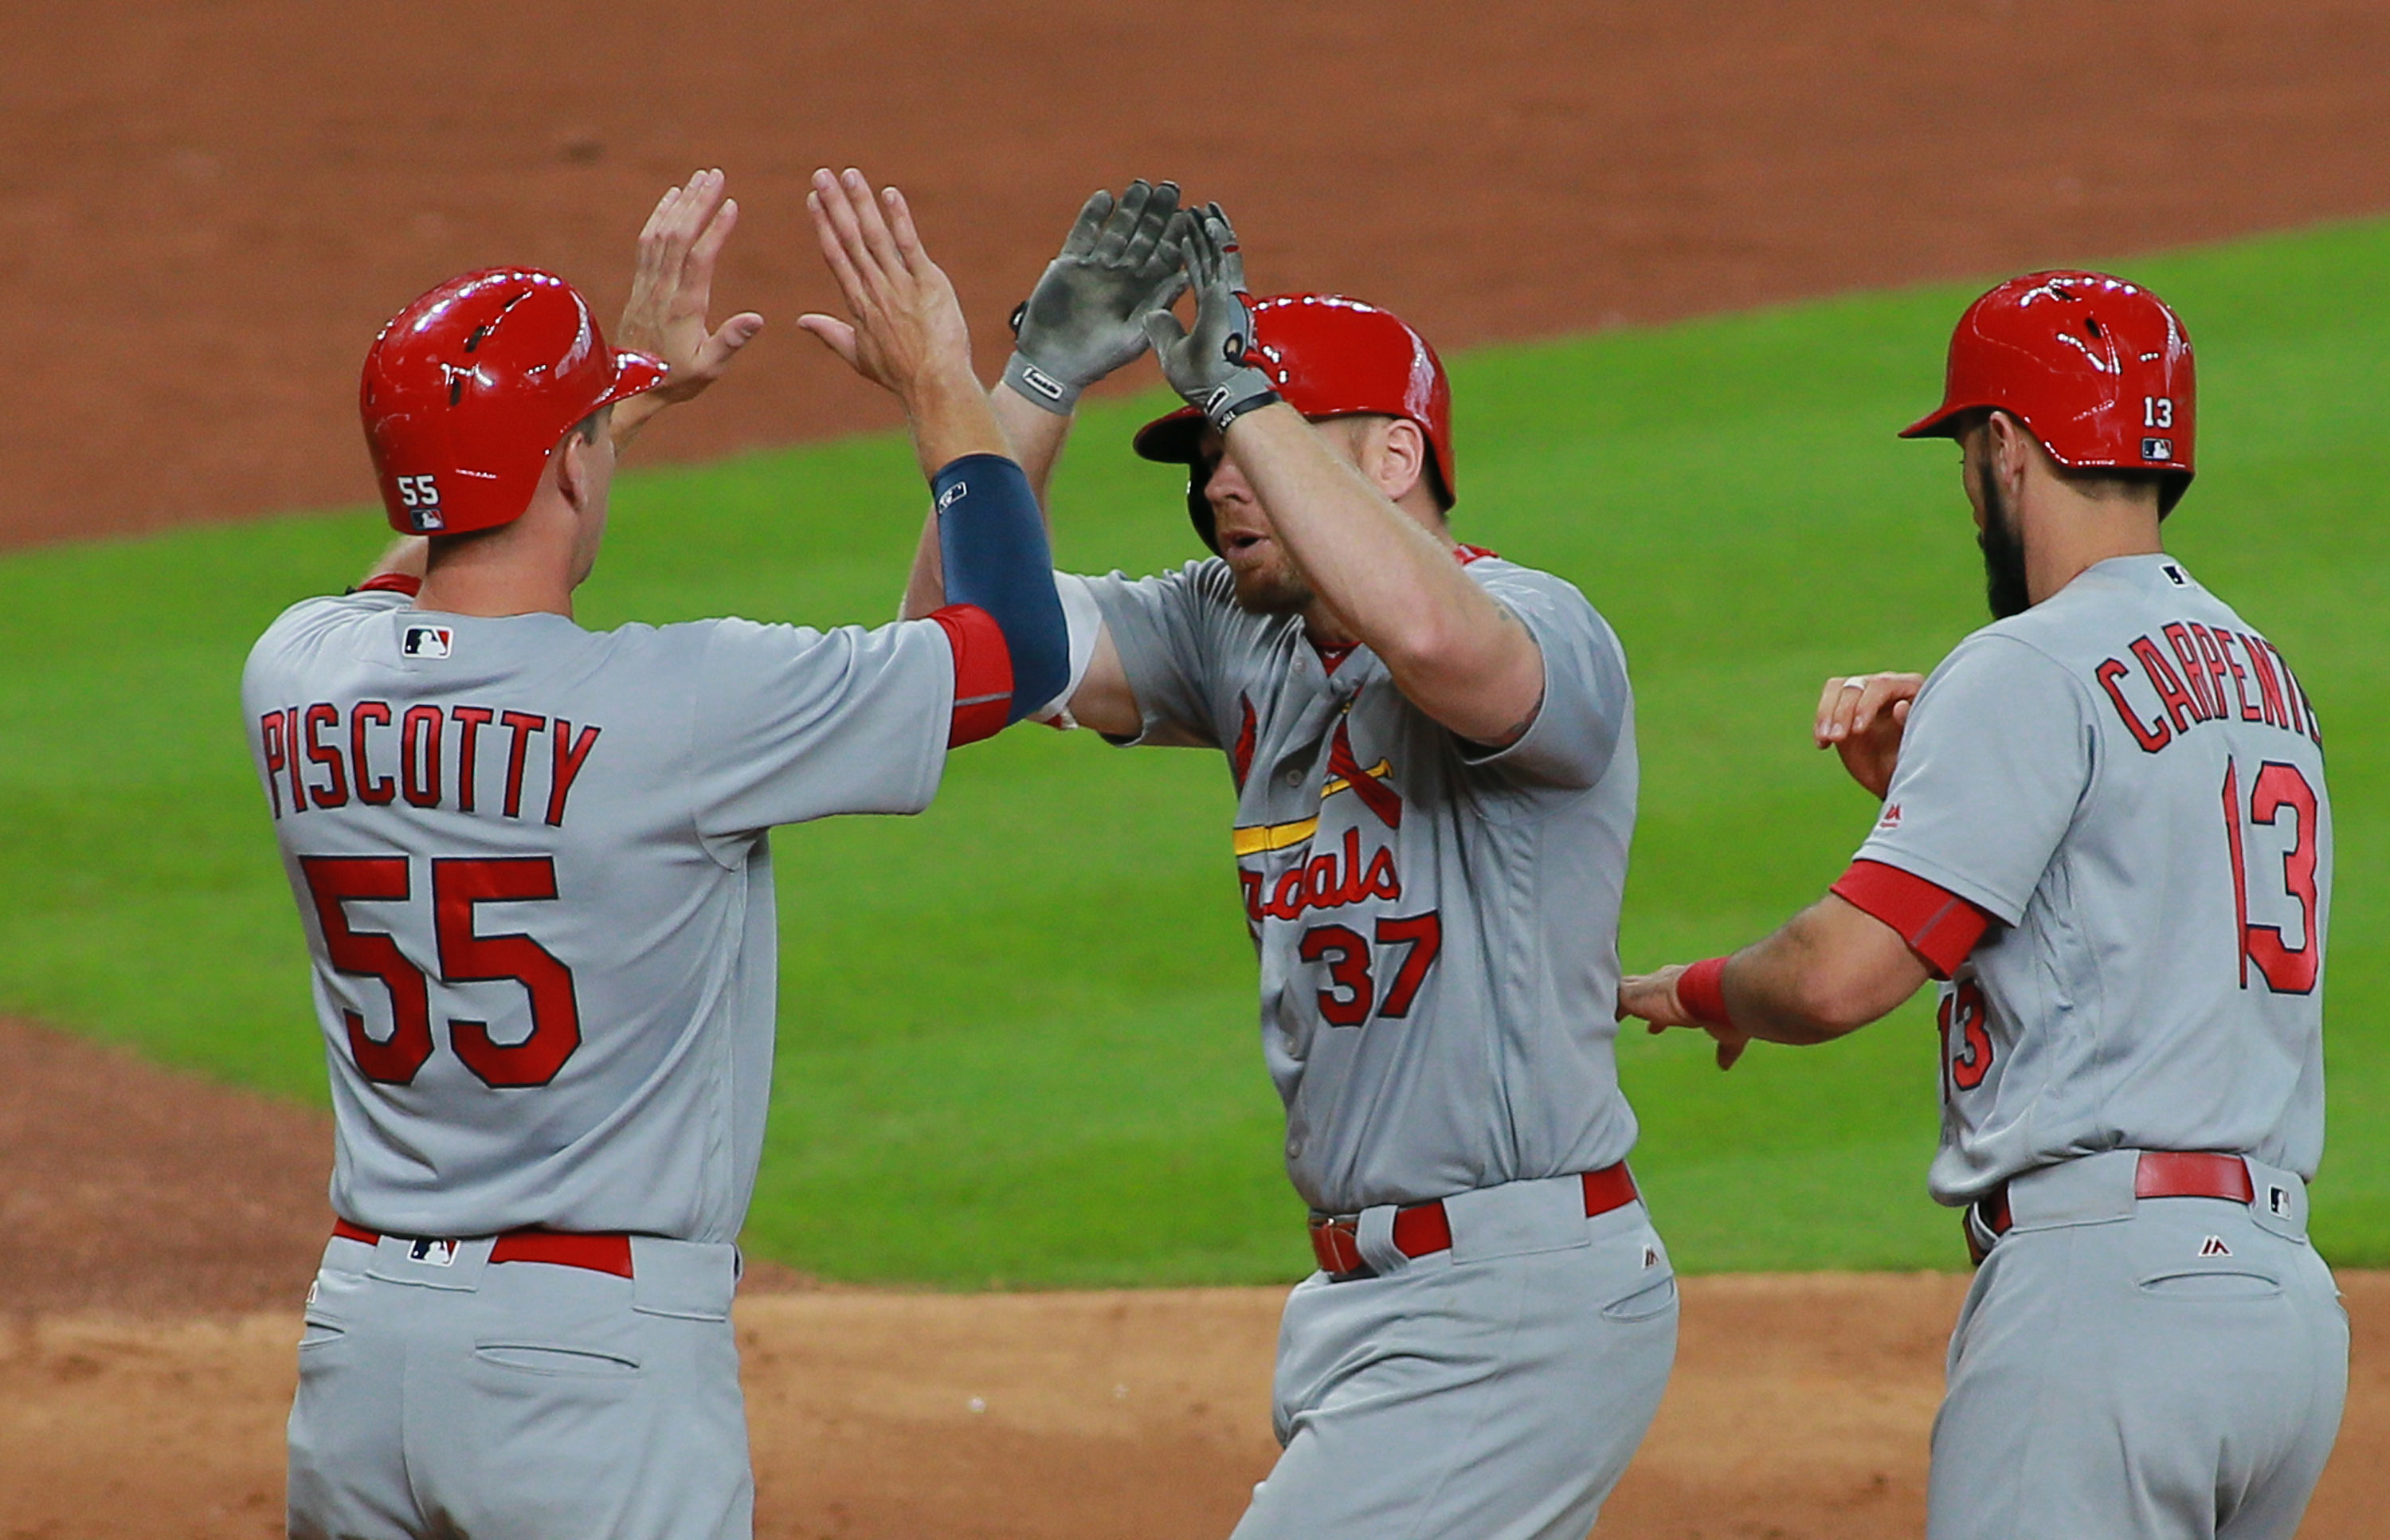 St. Louis Cardinals Brandon Moss (37) is greeted by Stephen Piscotty (55) and Matt Carpenter after hitting a three-run home run against the Houston Astros in the seventh inning of a baseball game Wednesday, Aug. 17, 2016 in Houston. (AP Photo/Richard Cars